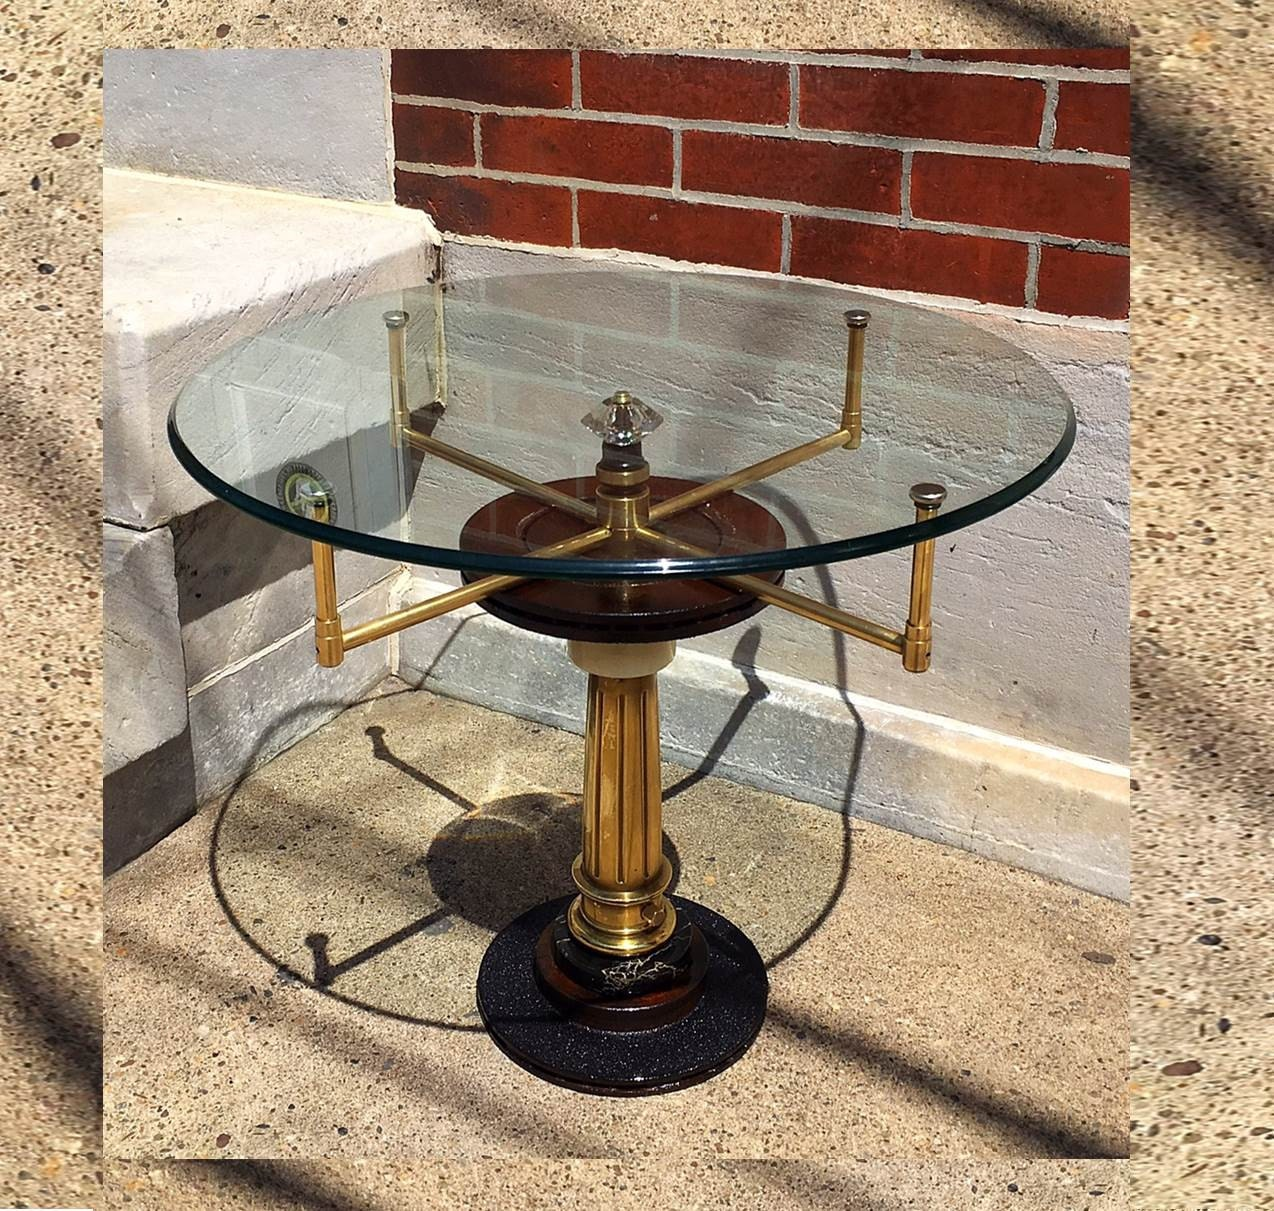 Steampunk Furniture, Man Cave Table, Steampunk Table, Industrial Table, Man  Cave Stuff - Steampunk Table Etsy